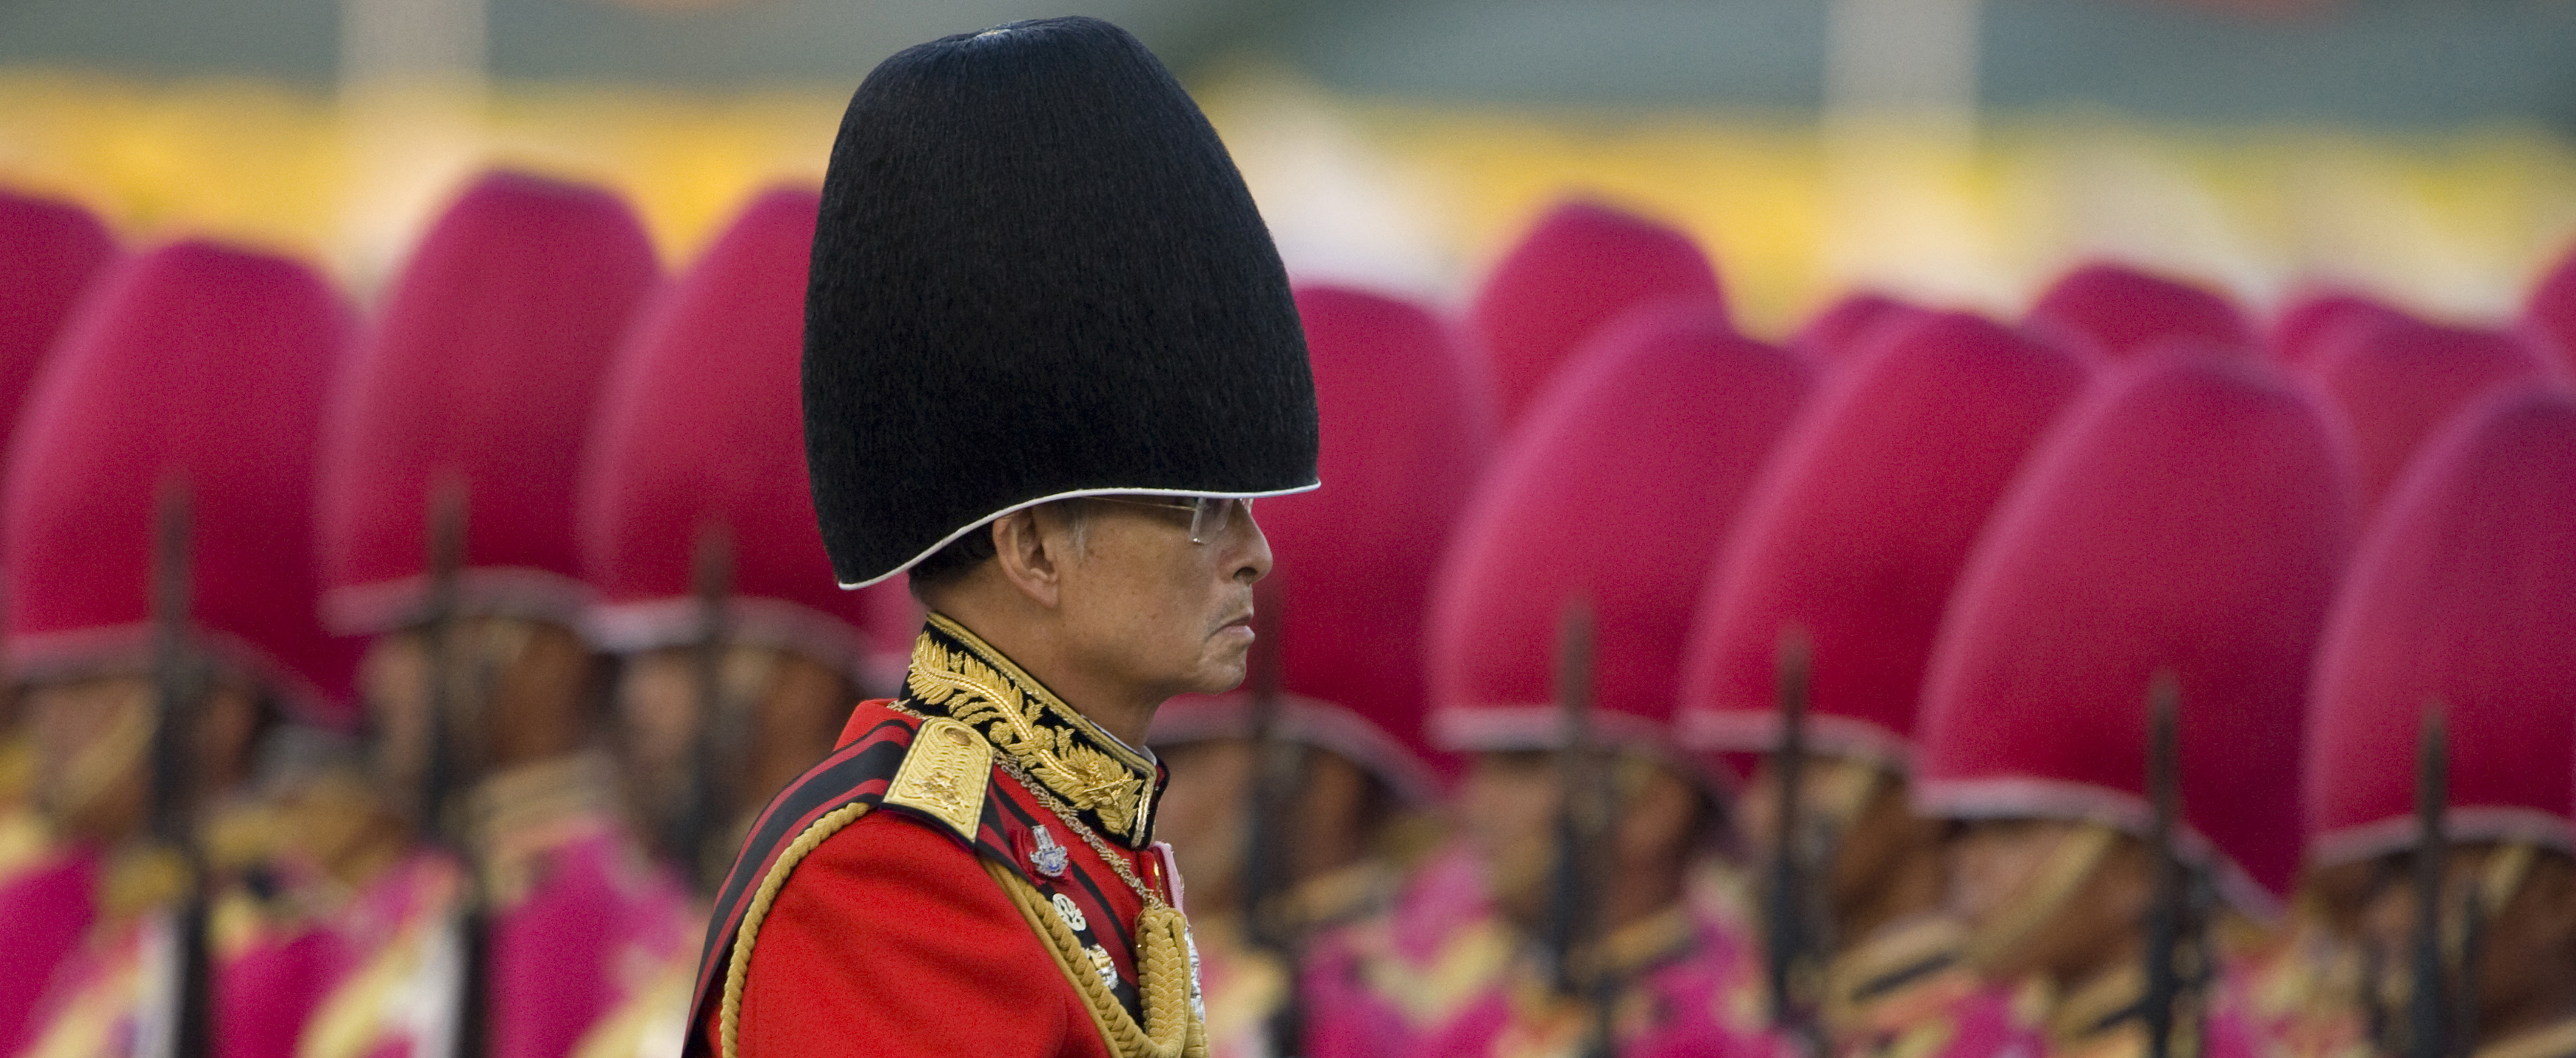 King Bhumibol Adulyadej in December 2008